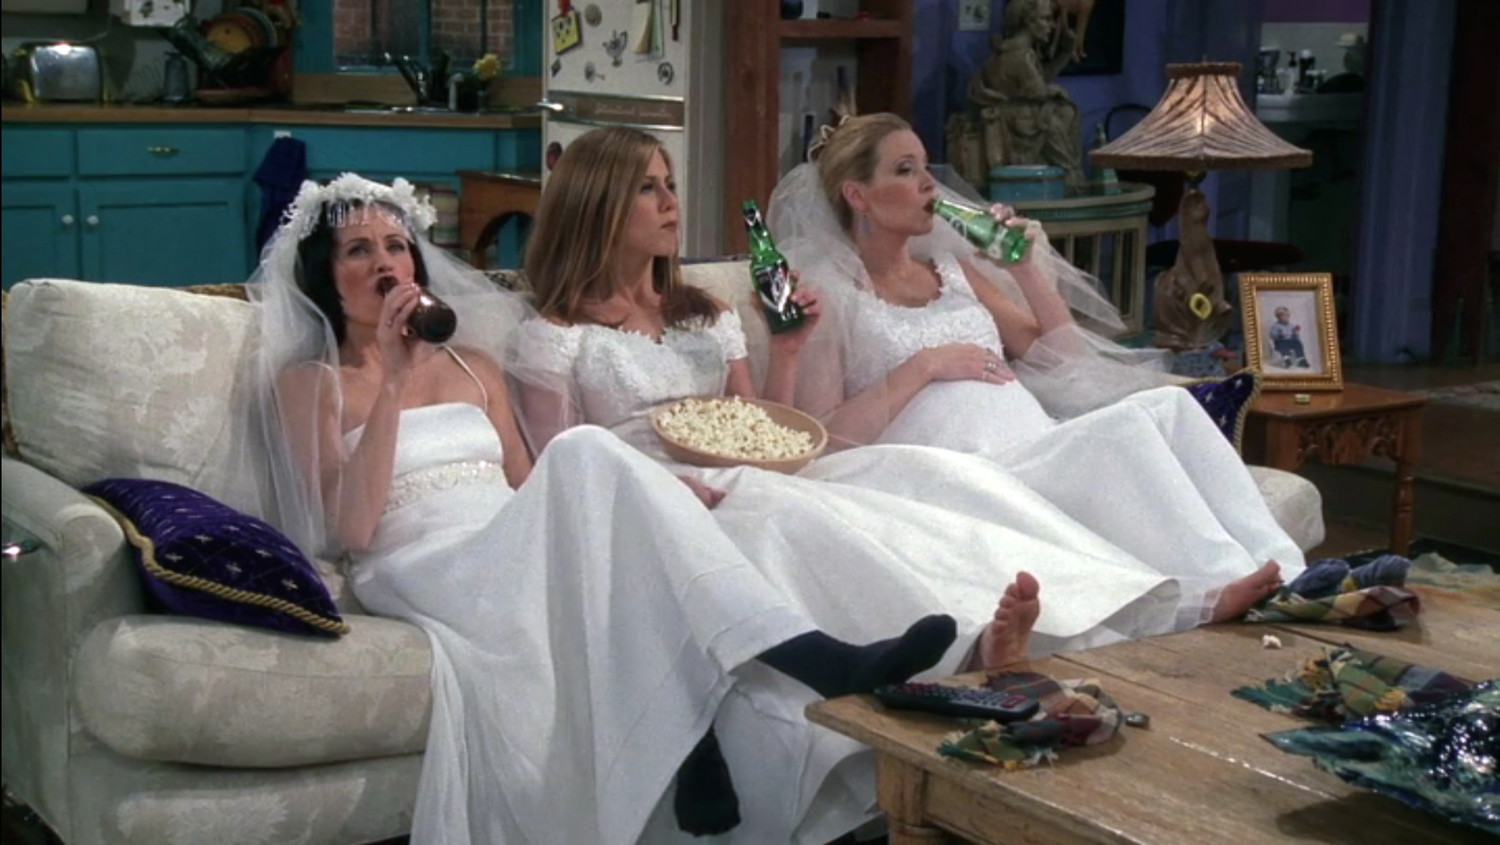 How to handle the weddings of your friends